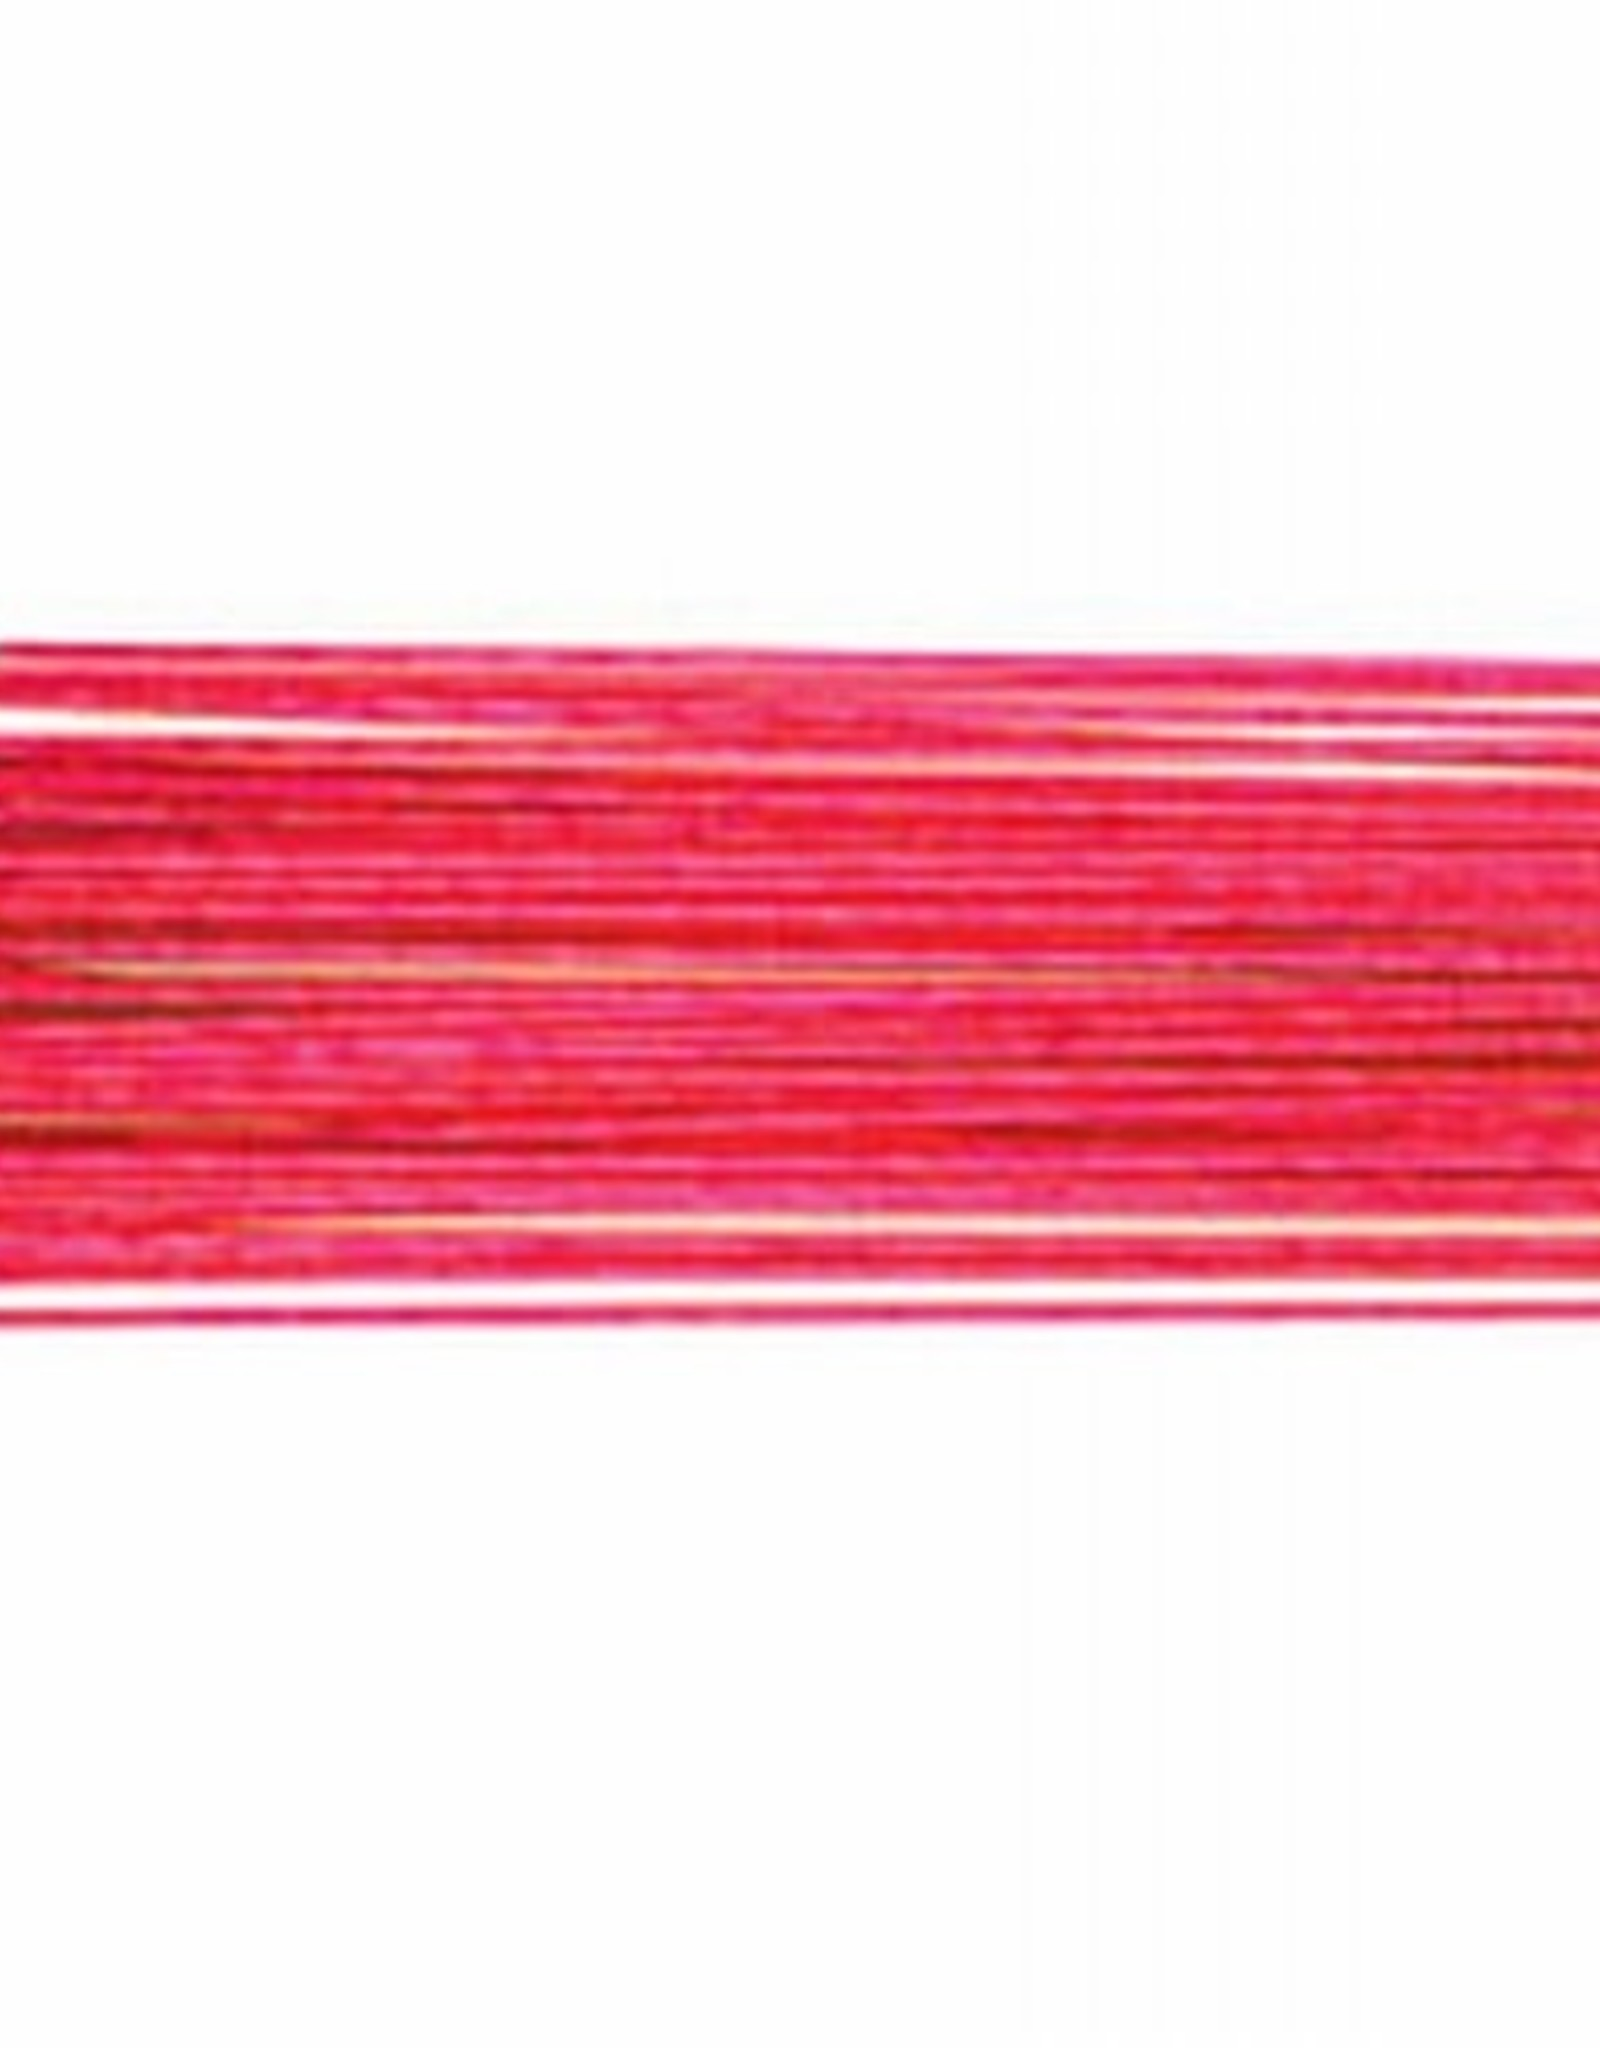 Culpitt Culpitt Floral Wire Metallic Bright Pink set/50 -24 gauge-